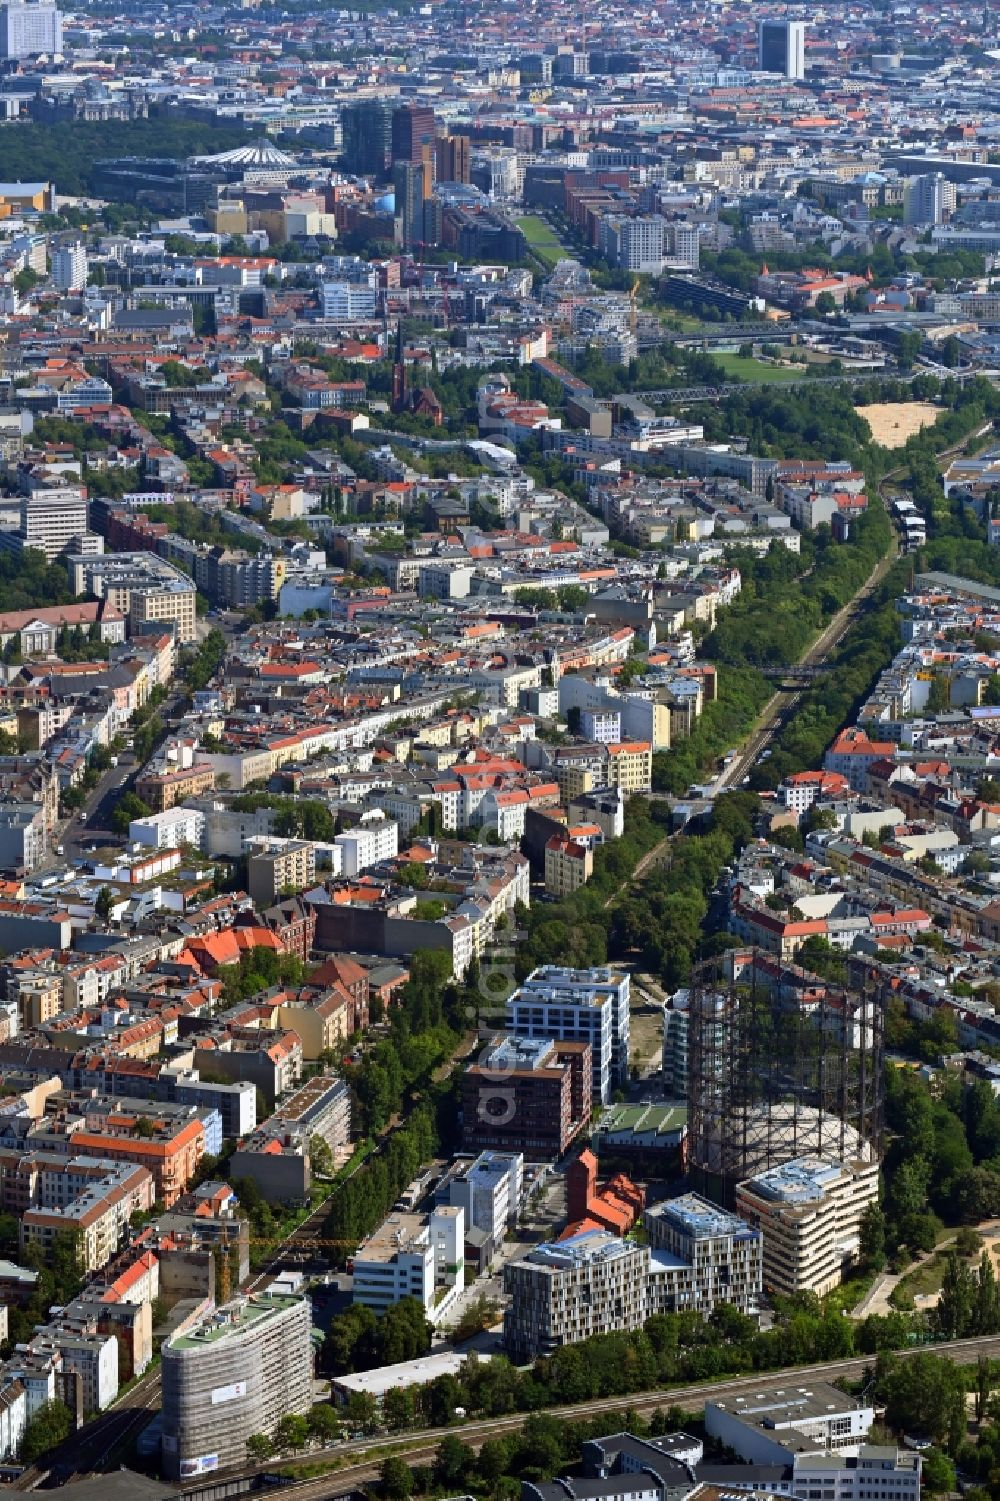 Aerial photograph Berlin - Office building on EUREF-Conpus on Torgauer Strasse in the district Schoeneberg in Berlin, Germany